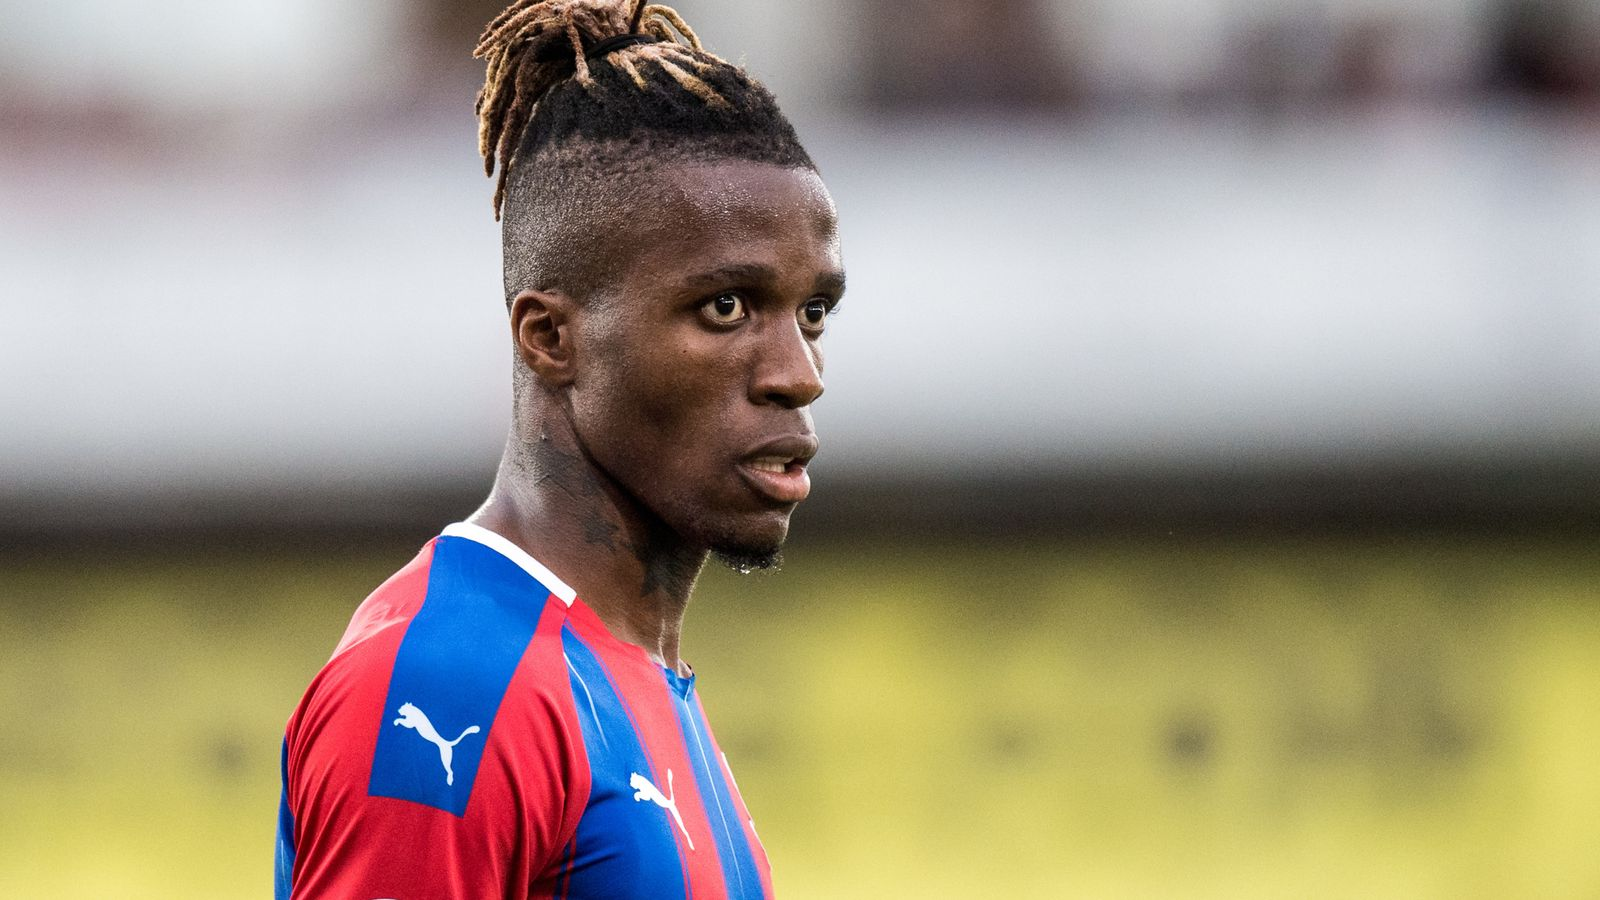 Crystal Palace say they have taken action over racist abuse of Wilfried Zaha on social media